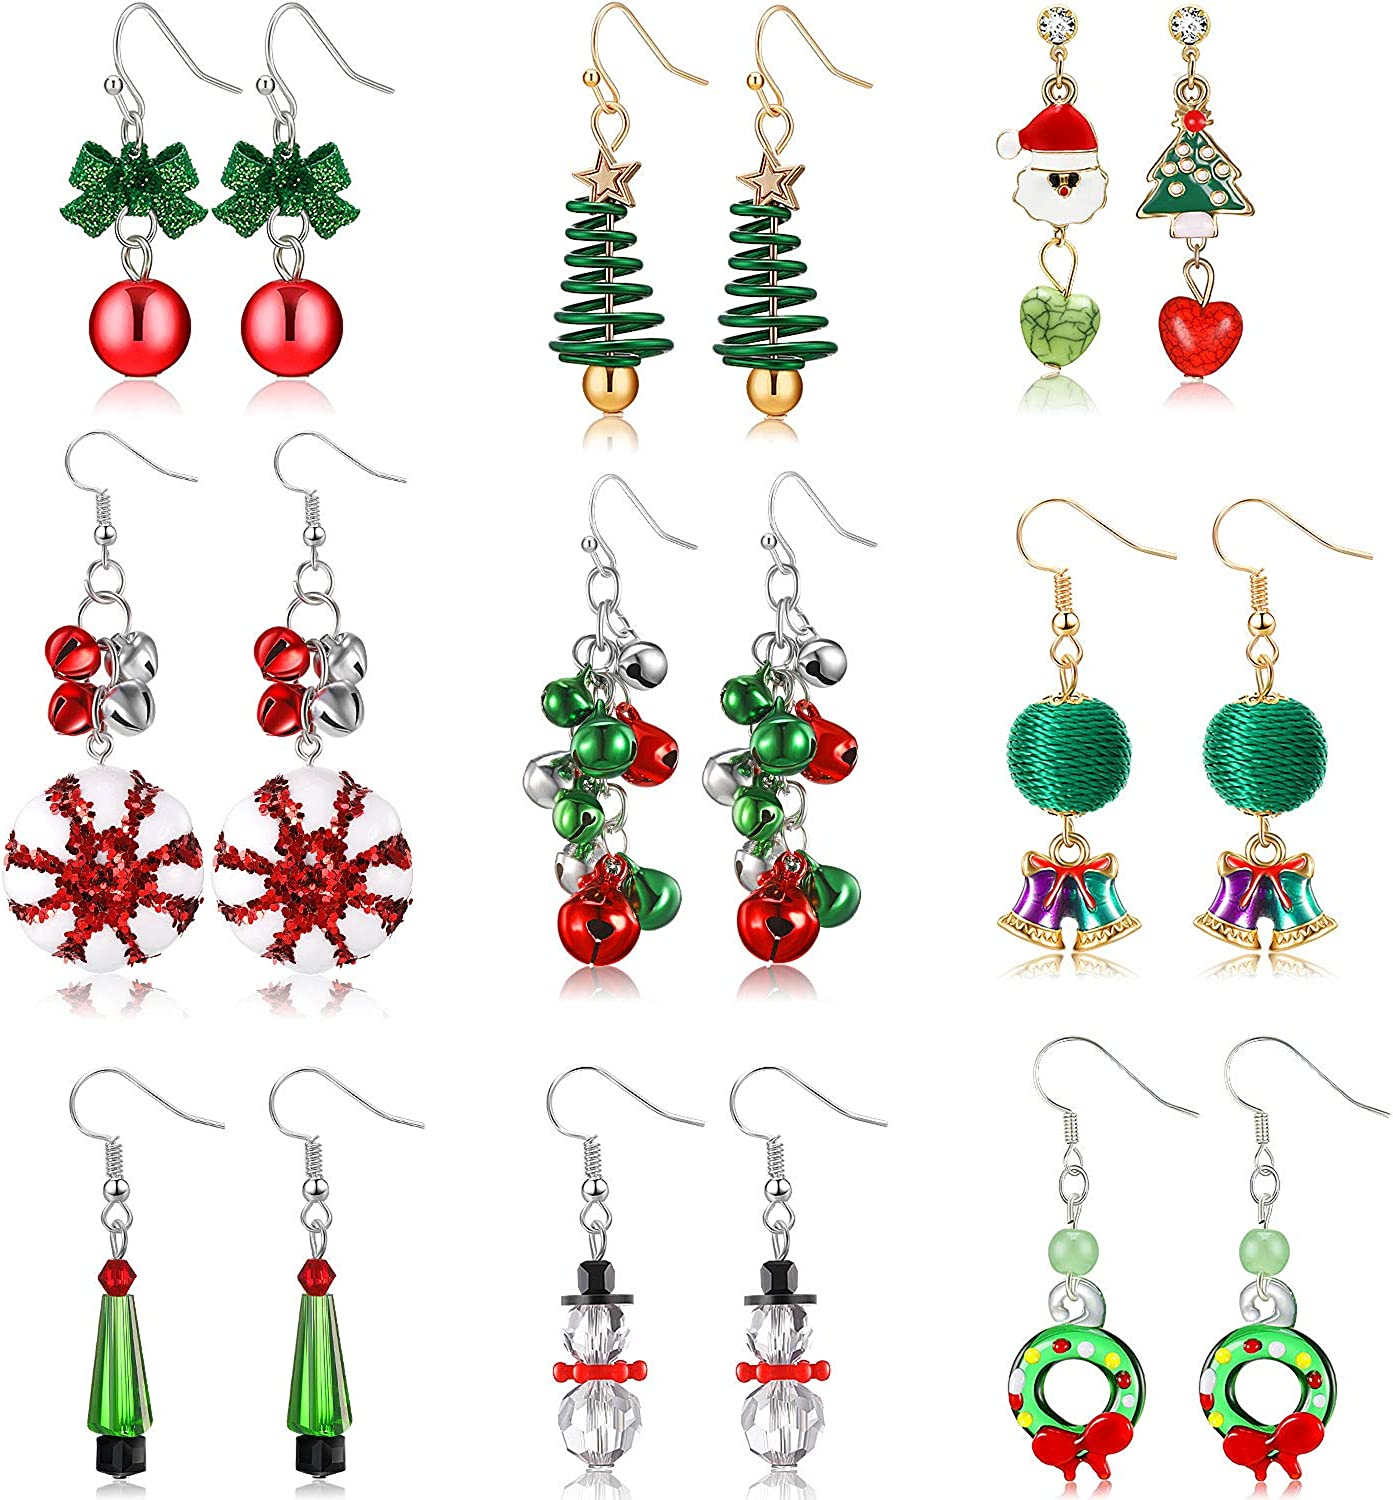 red hair top hat poinsettia french hook dangle drop carrot nose holiday mid century Snowman earrings enamel snowman sparkle scarf